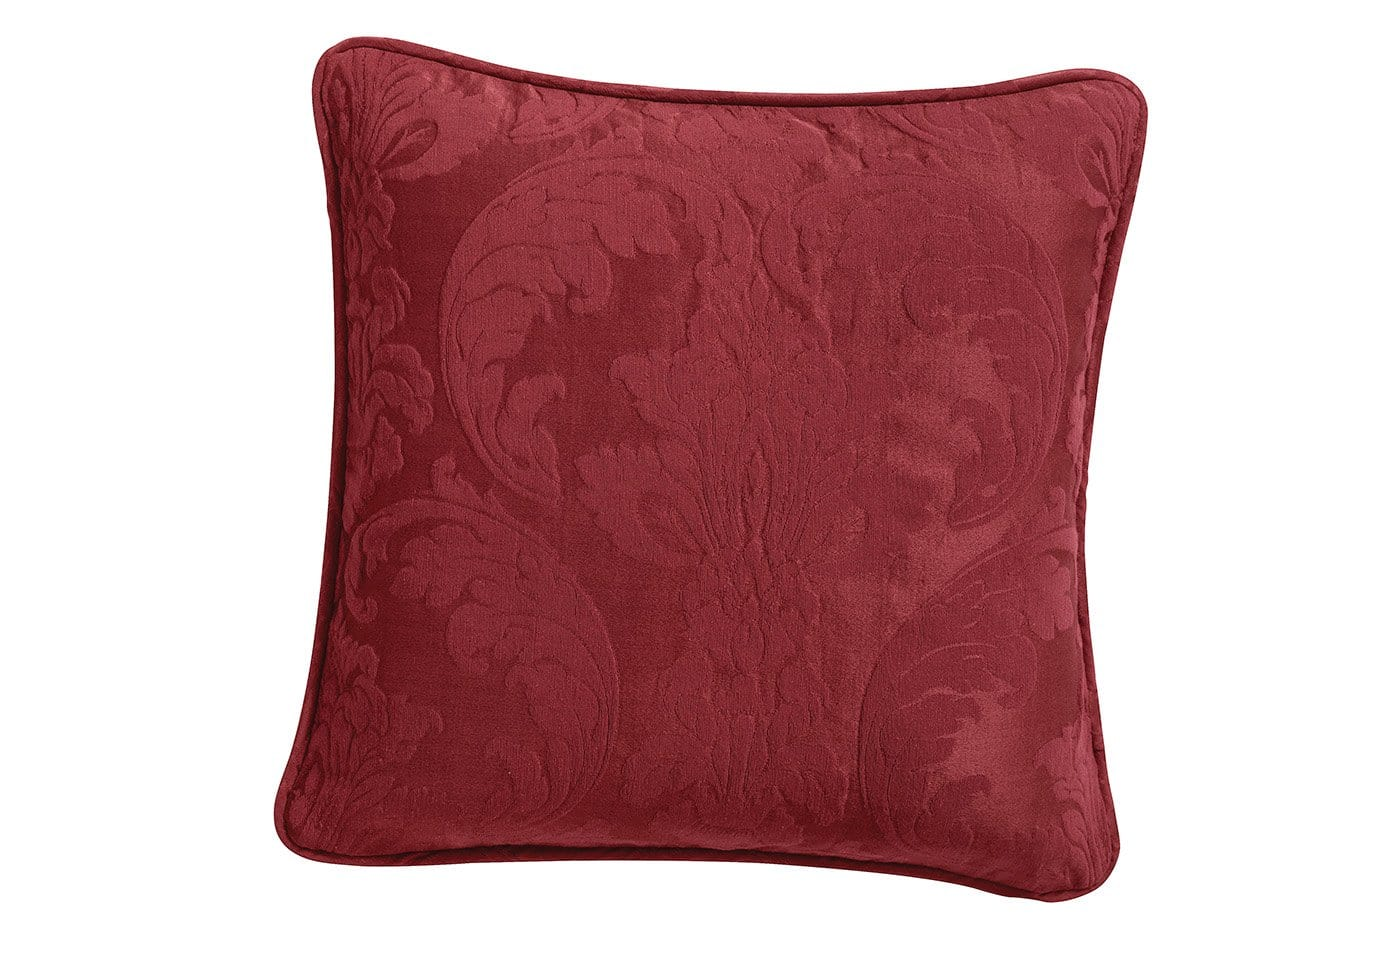 Matelasse Damask 18 Inch Square Coordinating Pillow - 18 x 18 / Chili